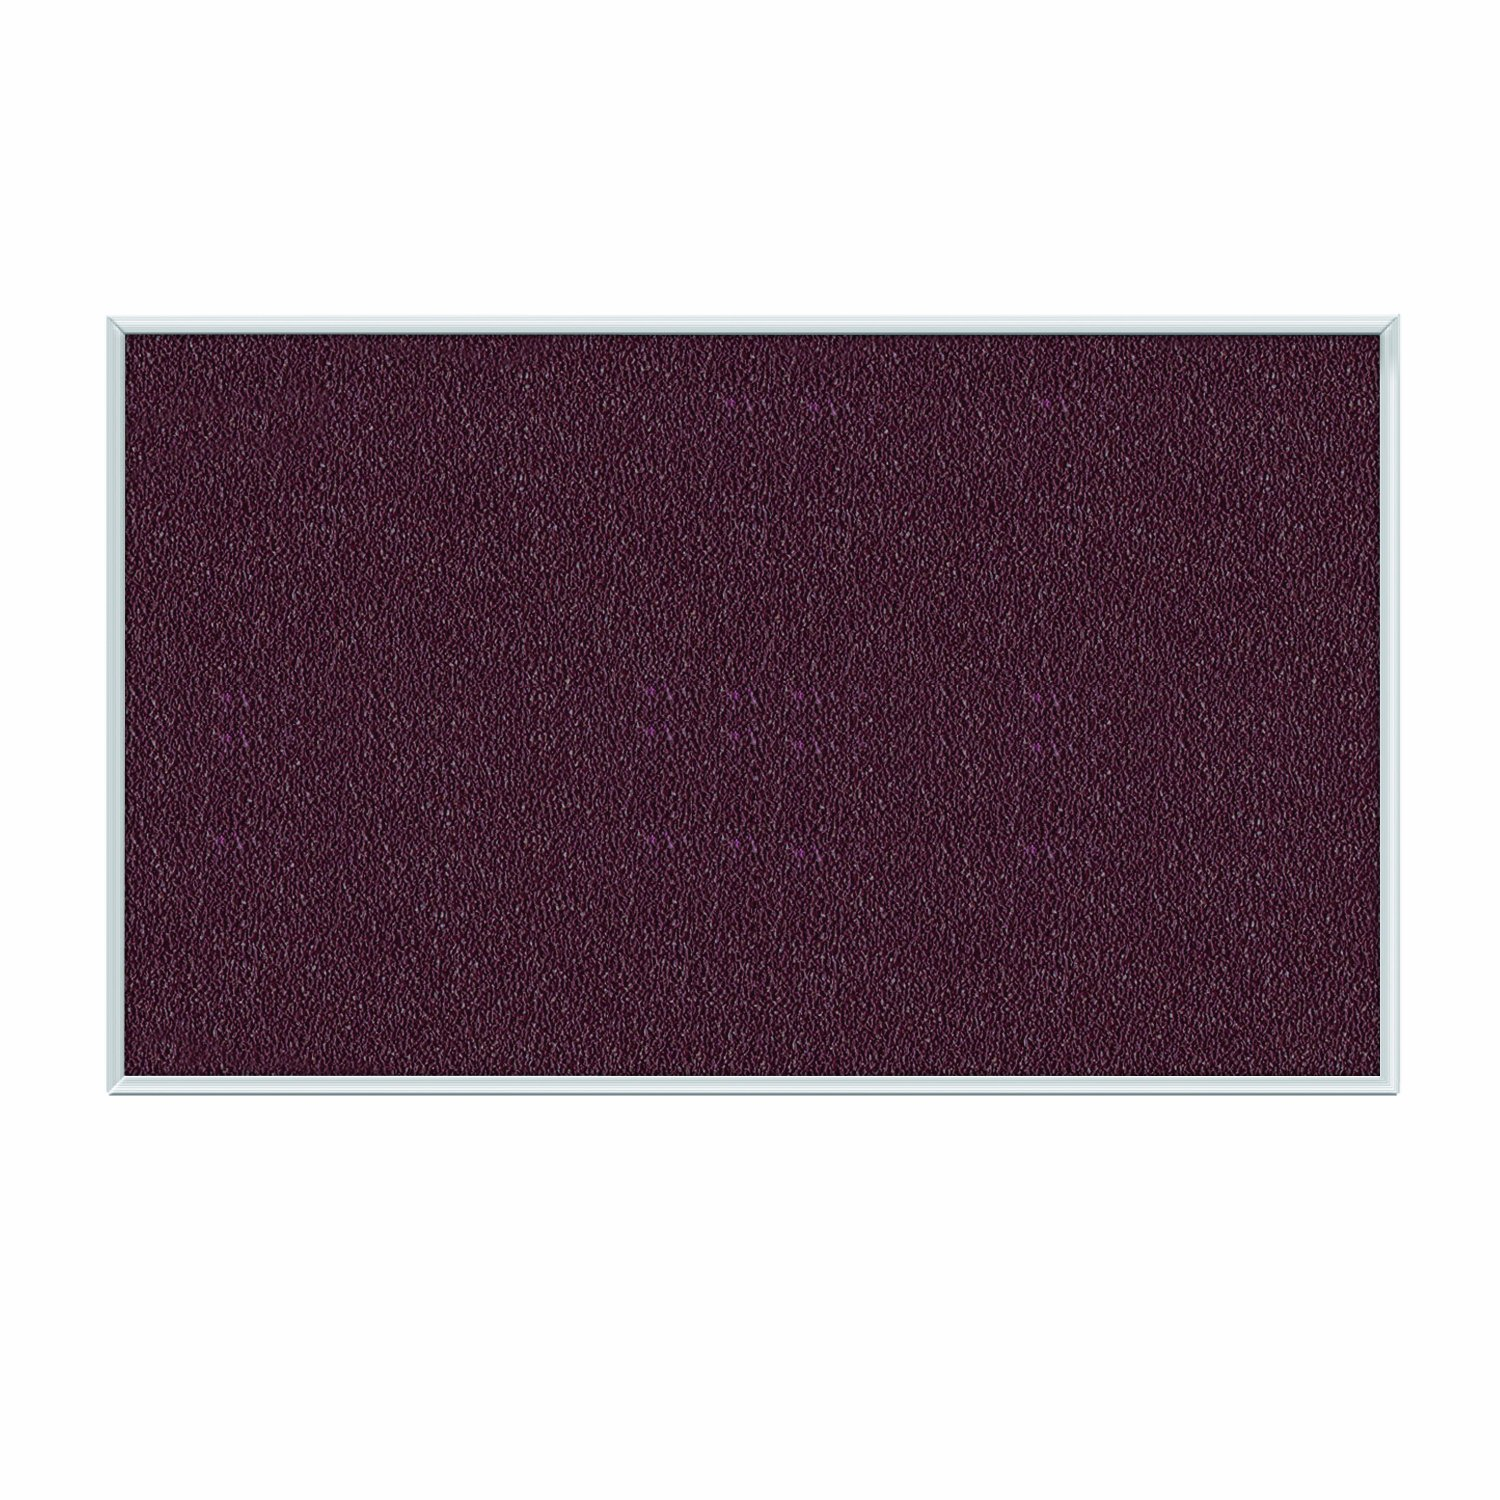 Ghent Berry Vinyl Bulletin Board, 48.5'' x 96.5'', Aluminum Frame, Made in the USA